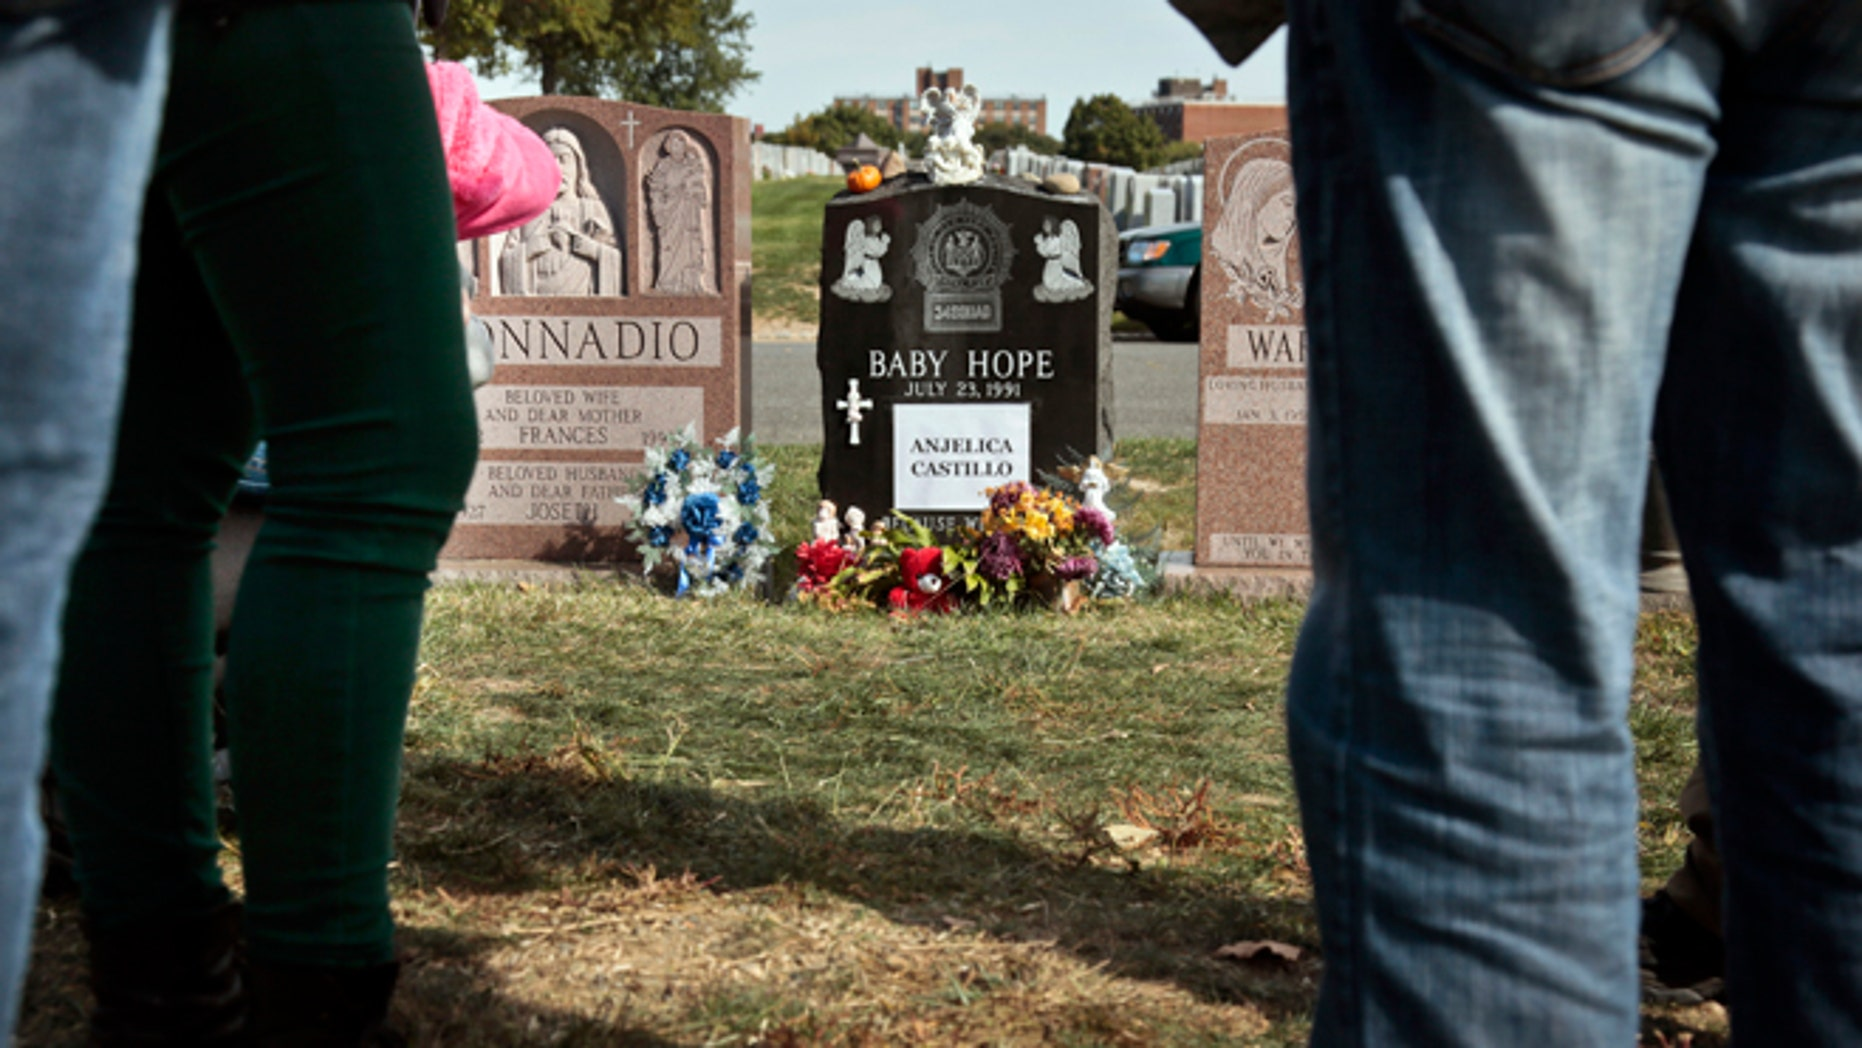 Visitors gather at the grave of Baby Hope, Anjelica Castillo, on Monday, Oct. 14, 2013 in the Bronx borough of New York.